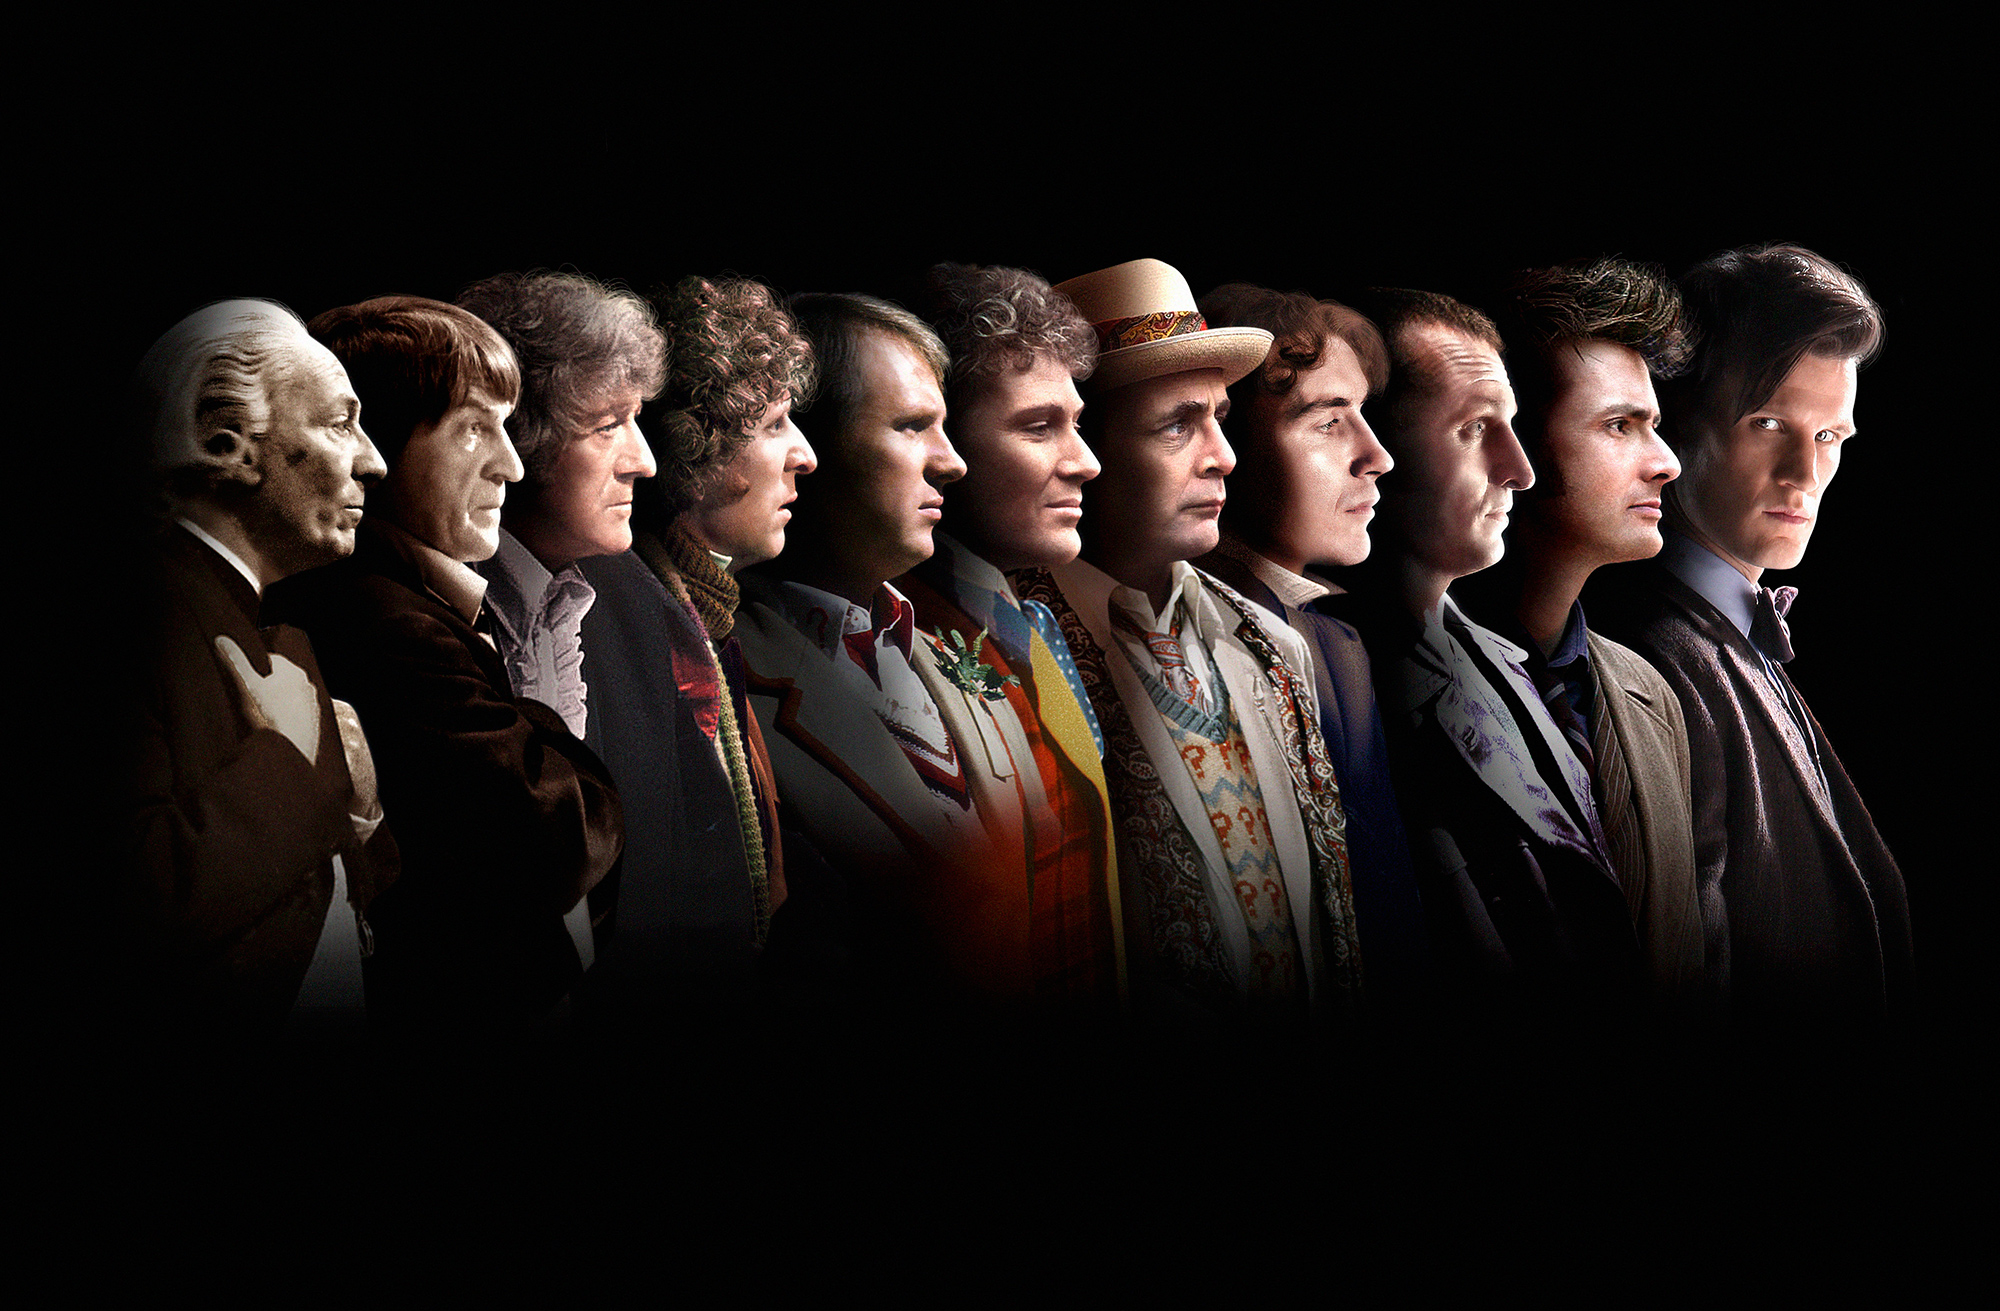 doctor-who-the-eleven-doctors_2000x1311